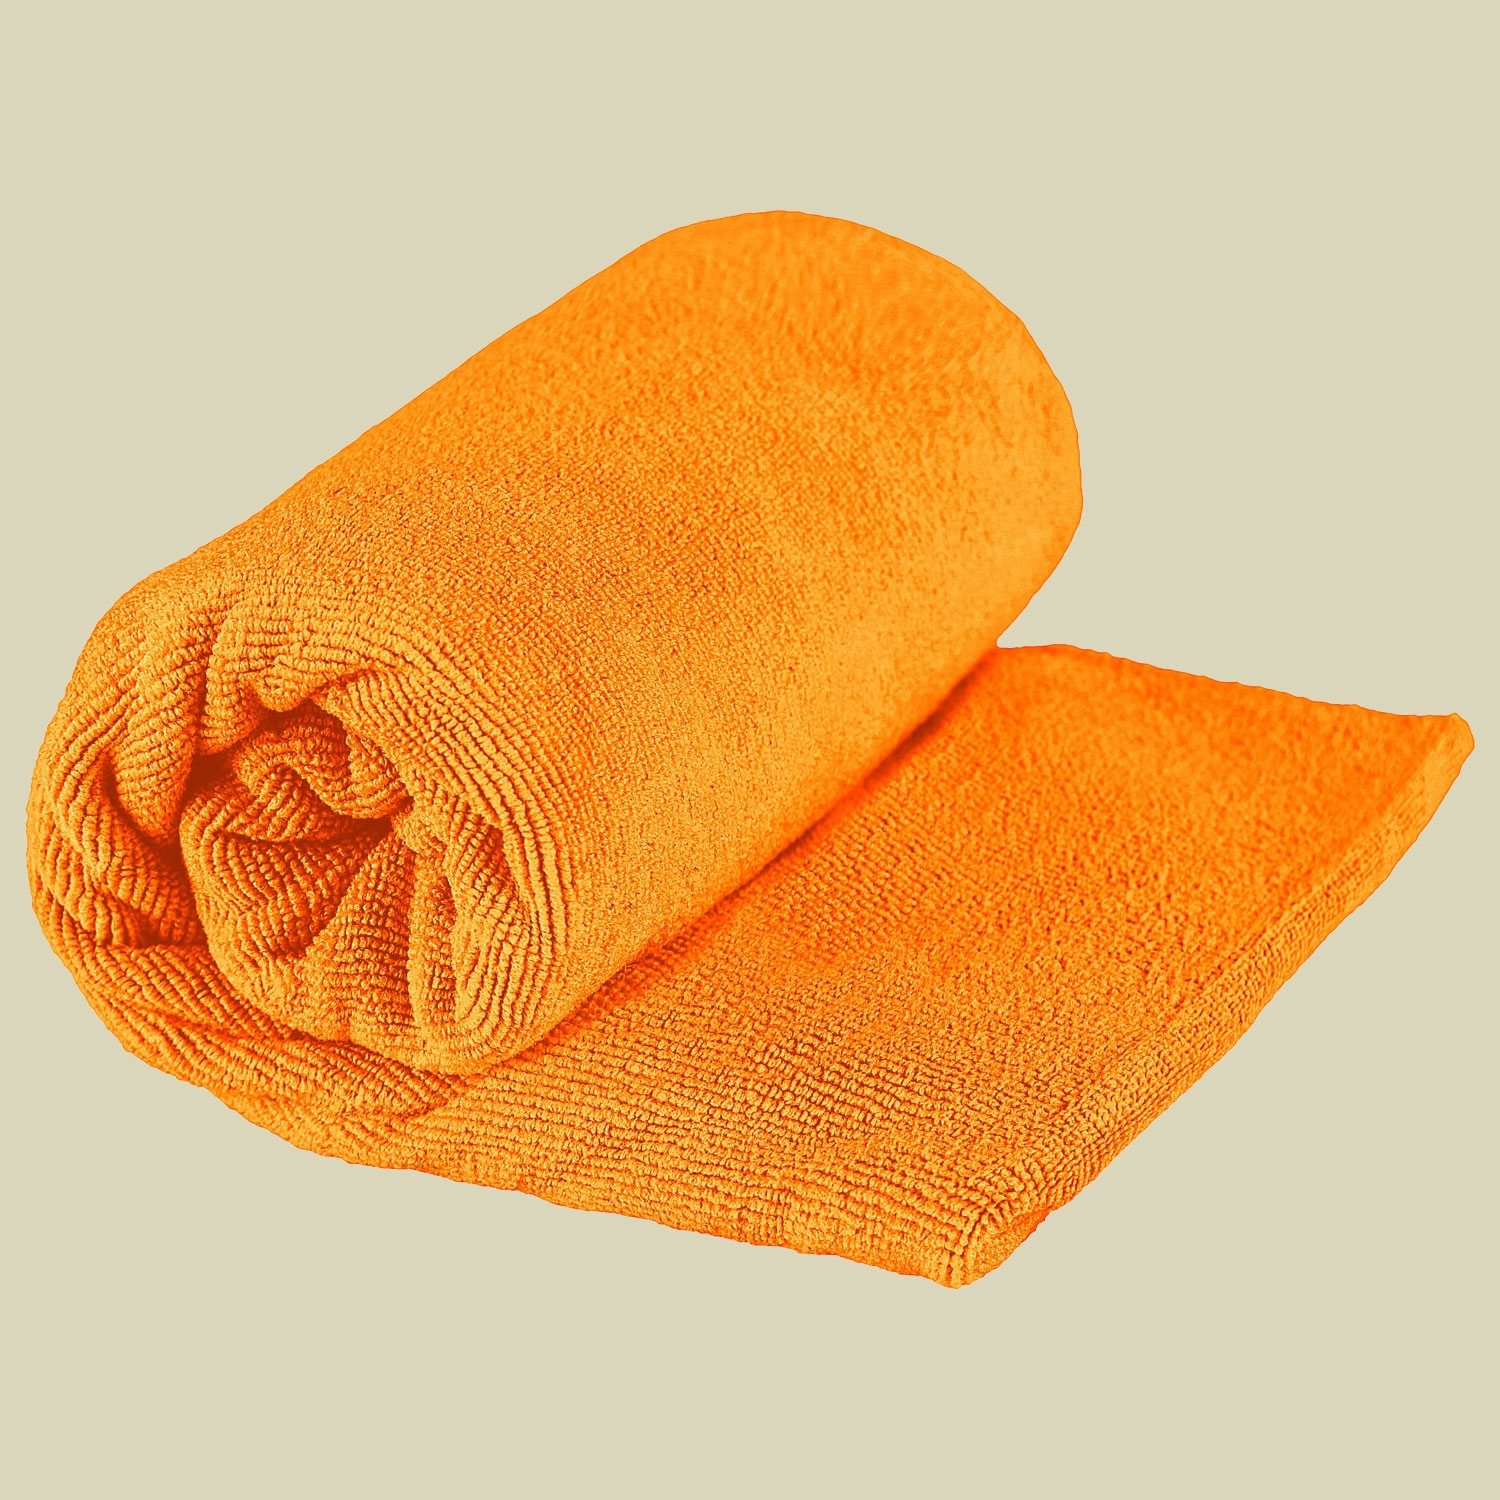 Sea to Summit TEK Towel Mikrofaser Handtuch Größe M orange von Sea to Summit